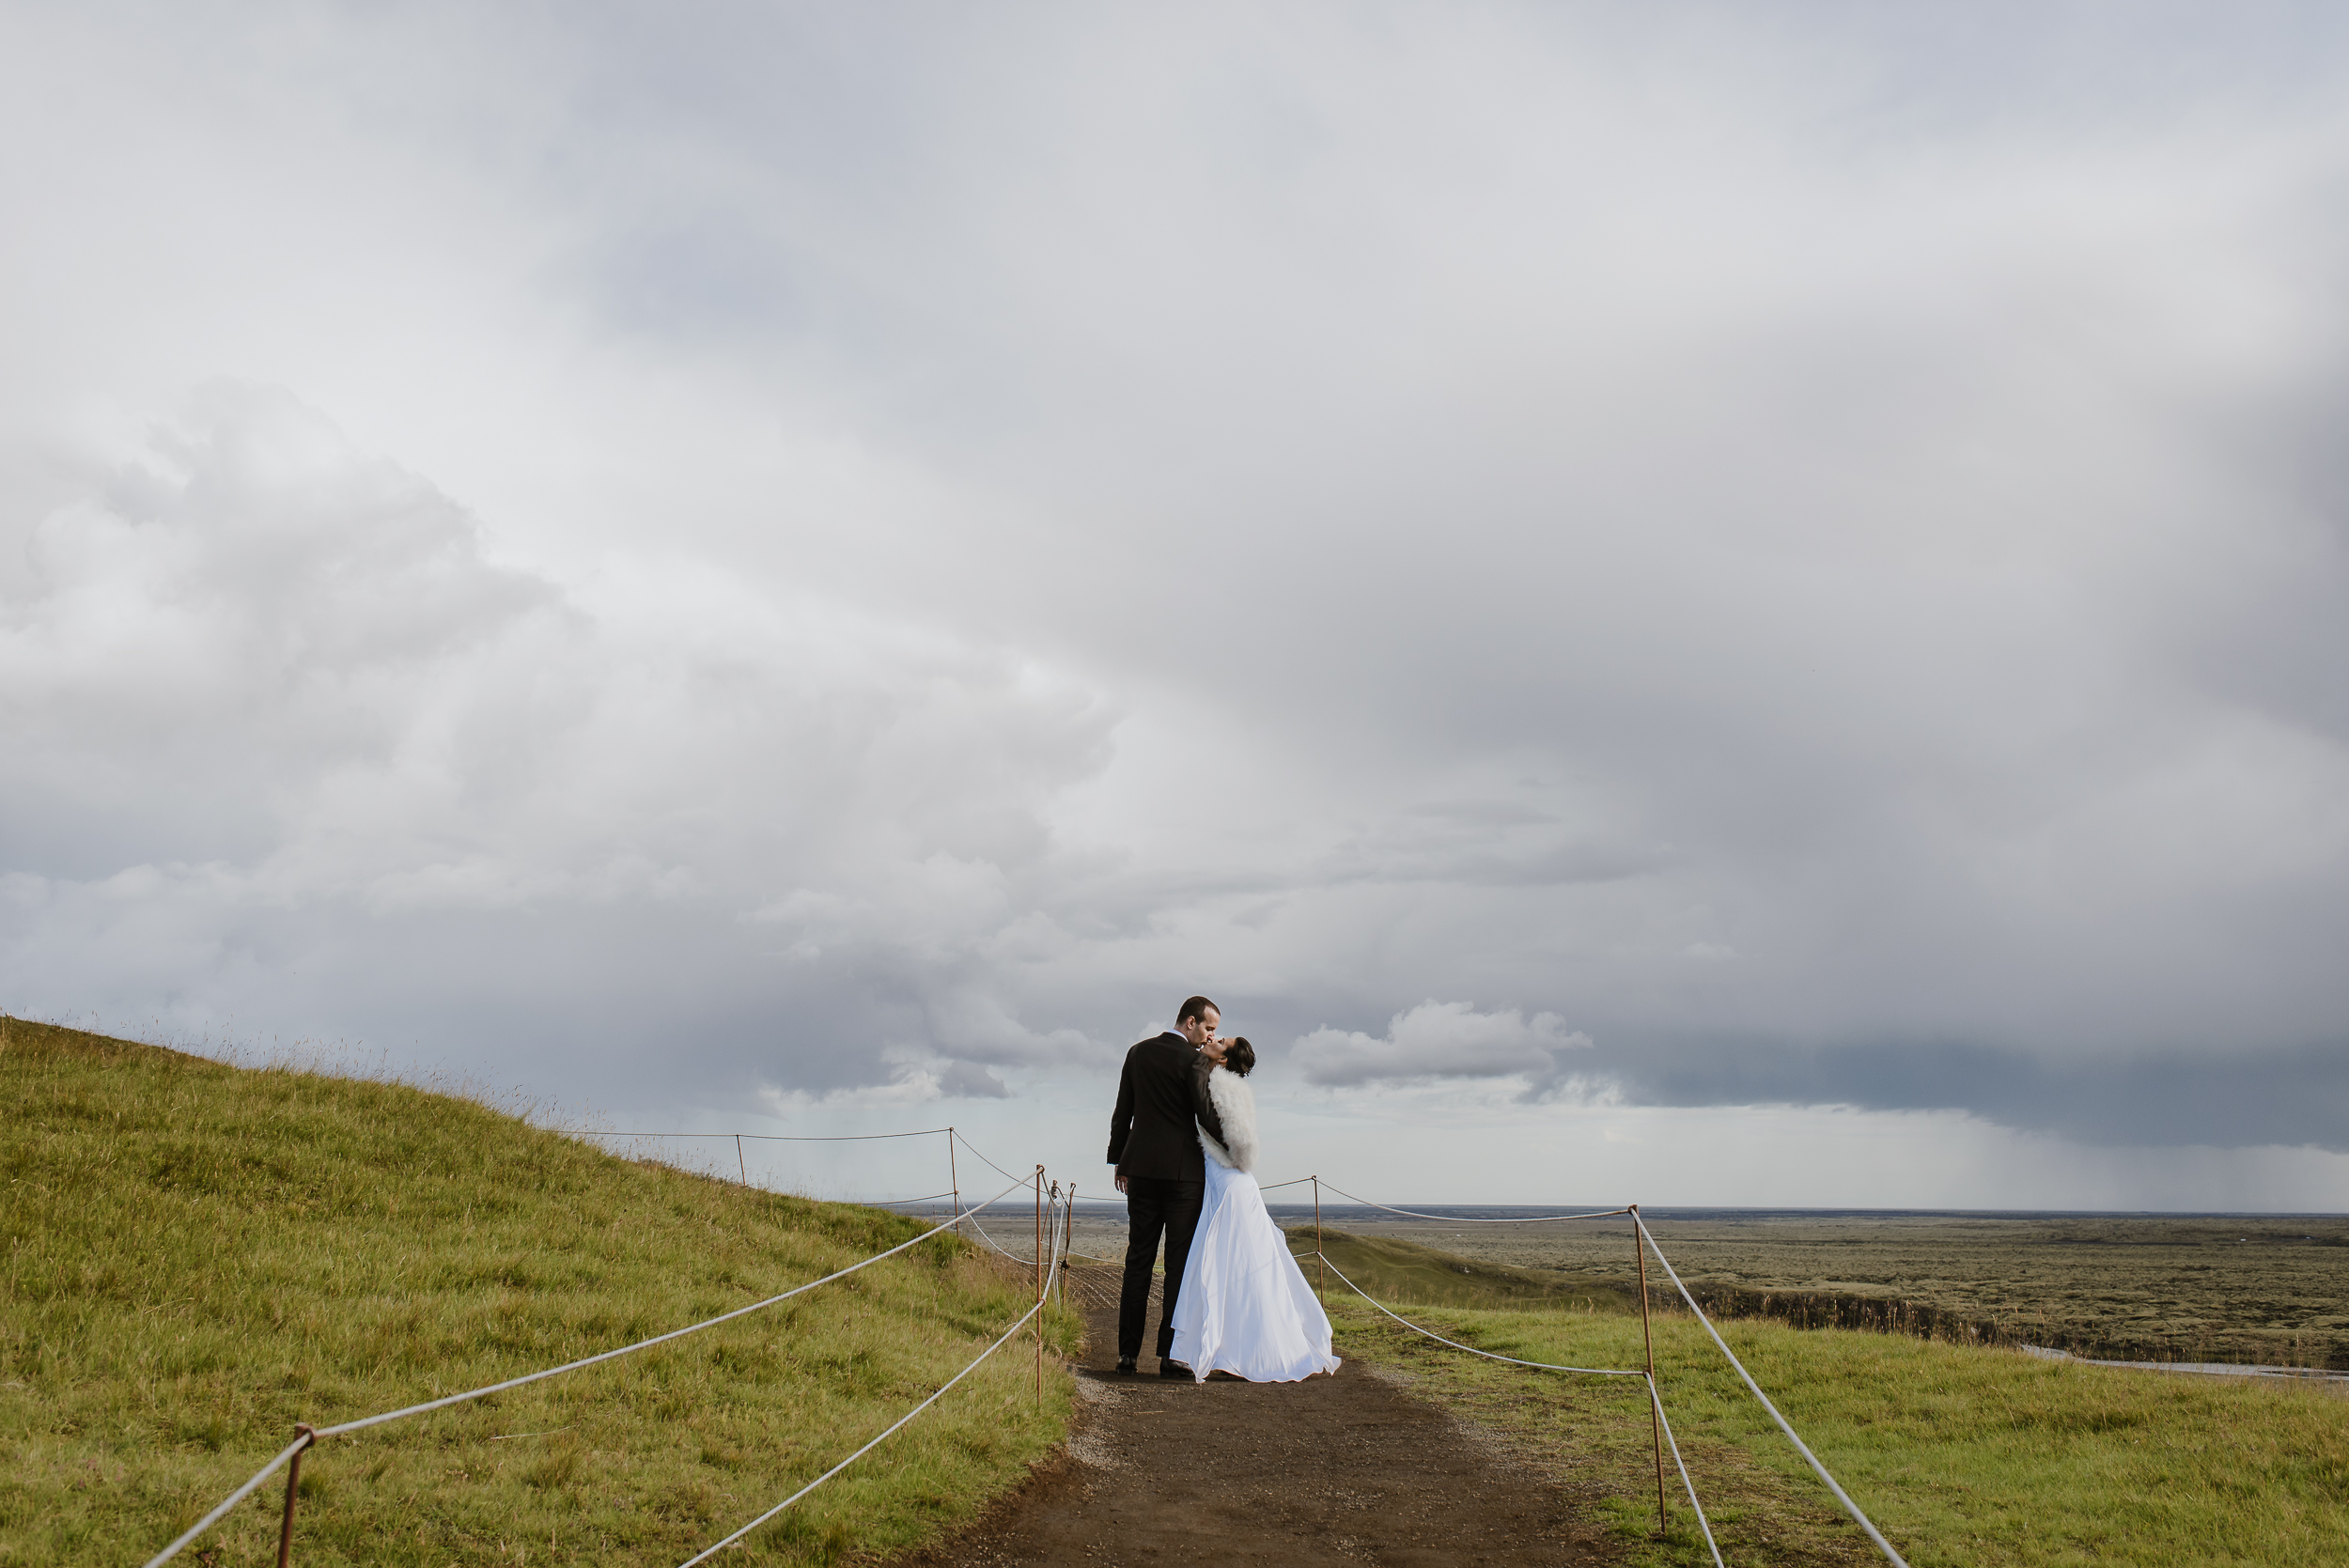 12-destination-wedding-iceland-engagement-session-vivianchen-134.jpg